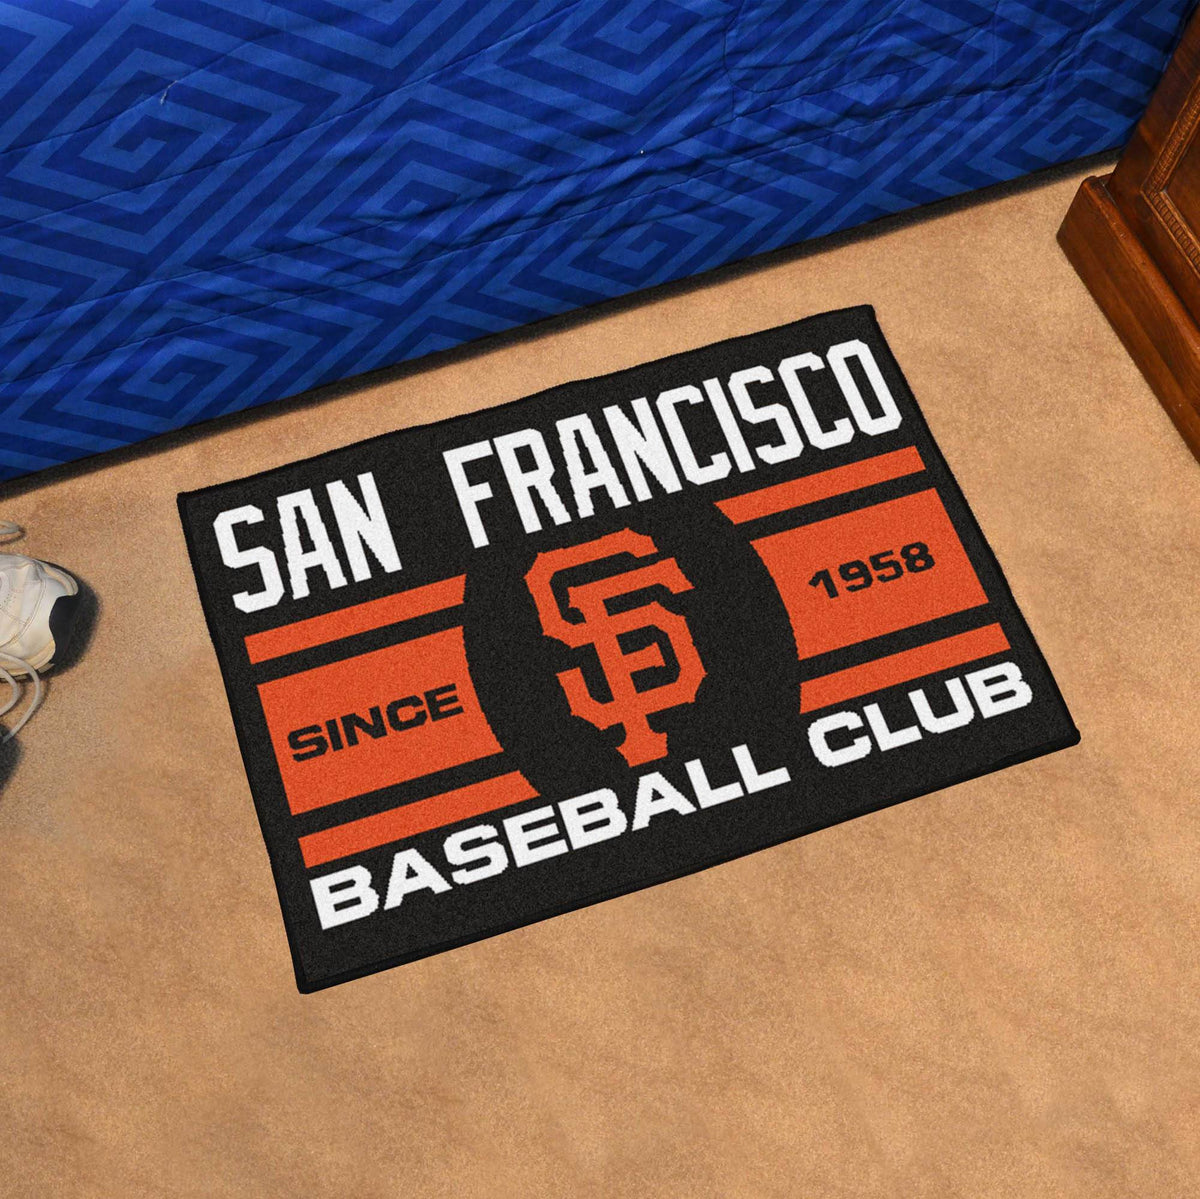 MLB - Uniform Starter Mat MLB Mats, Rectangular Mats, Uniform Starter Mat, MLB, Home Fan Mats San Francisco Giants